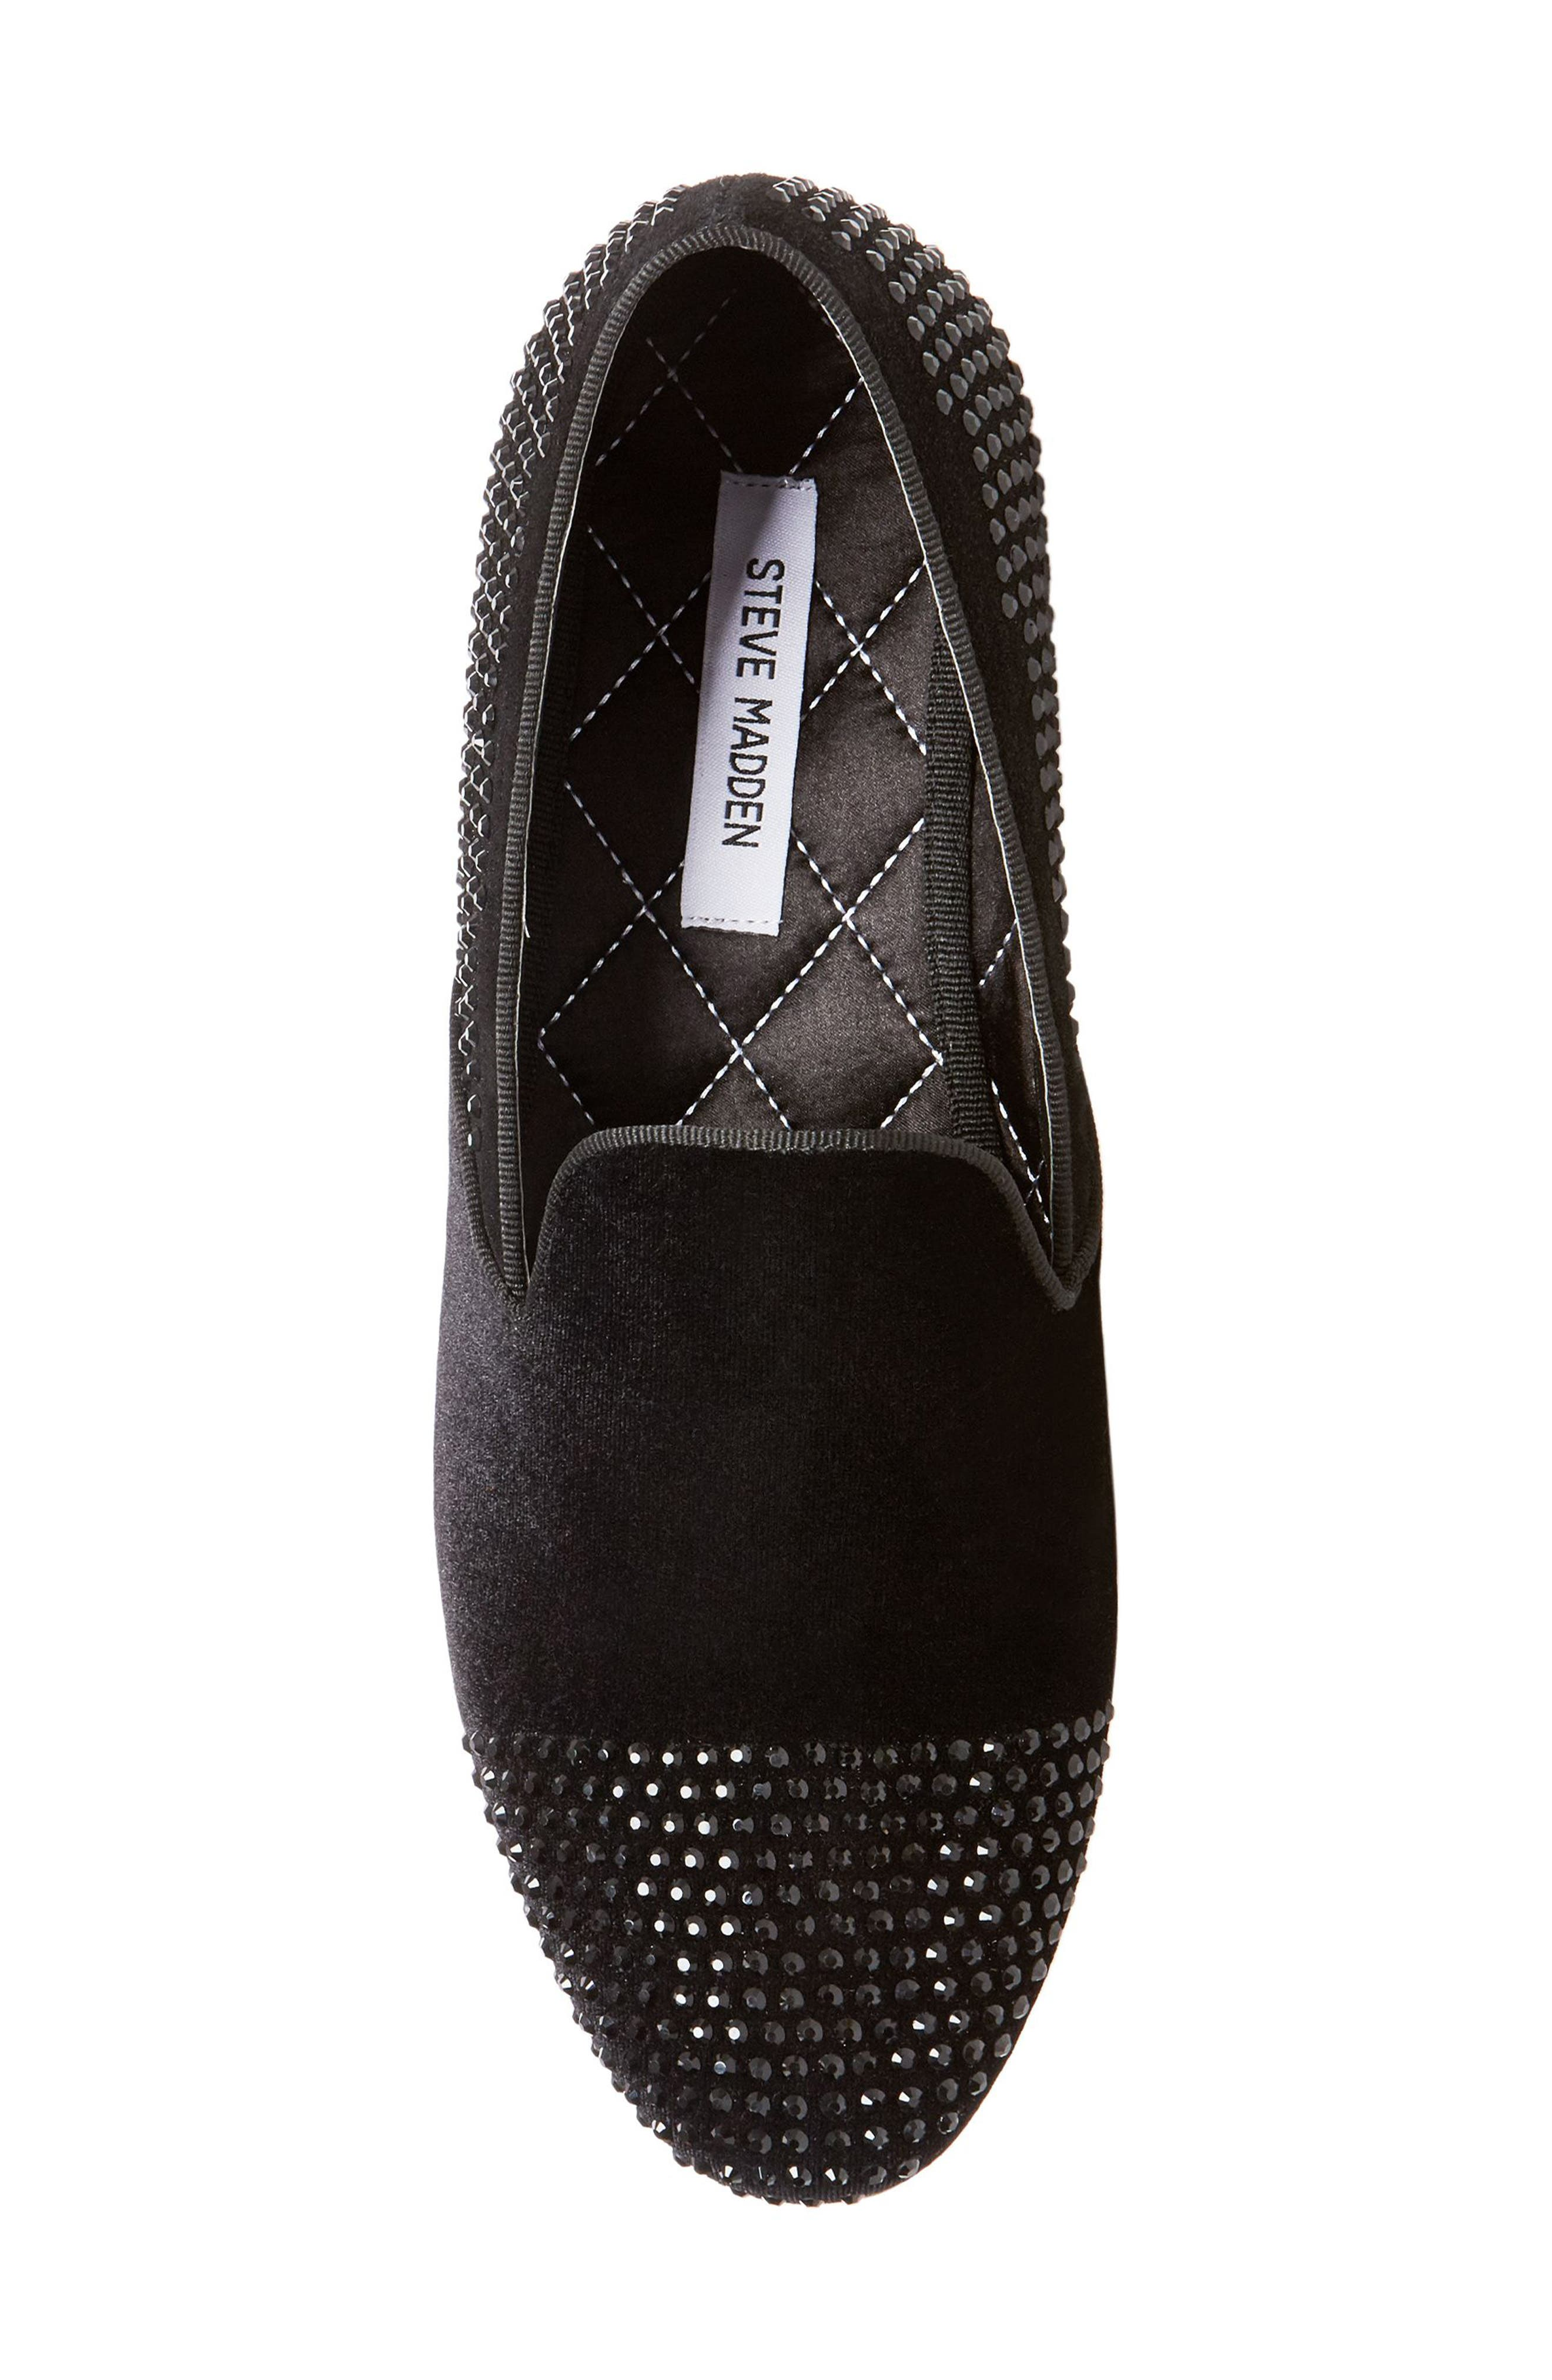 Clarity Loafer,                             Alternate thumbnail 5, color,                             Black Fabric